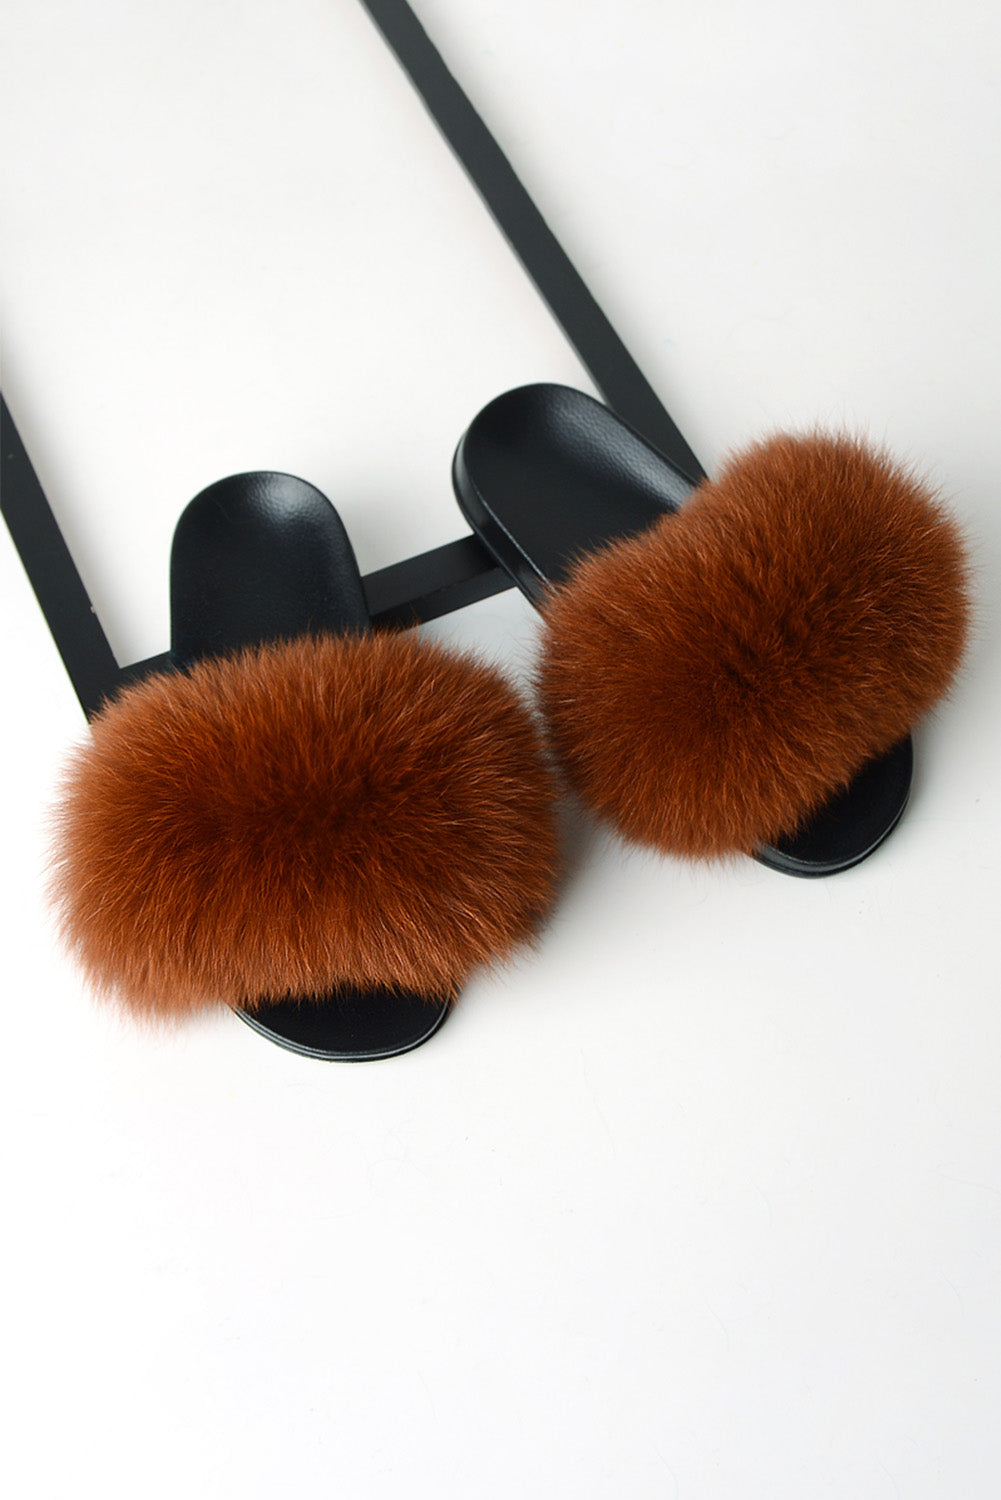 Brown Fluffy Slippers Slippers Discount Designer Fashion Clothes Shoes Bags Women Men Kids Children Black Owned Business